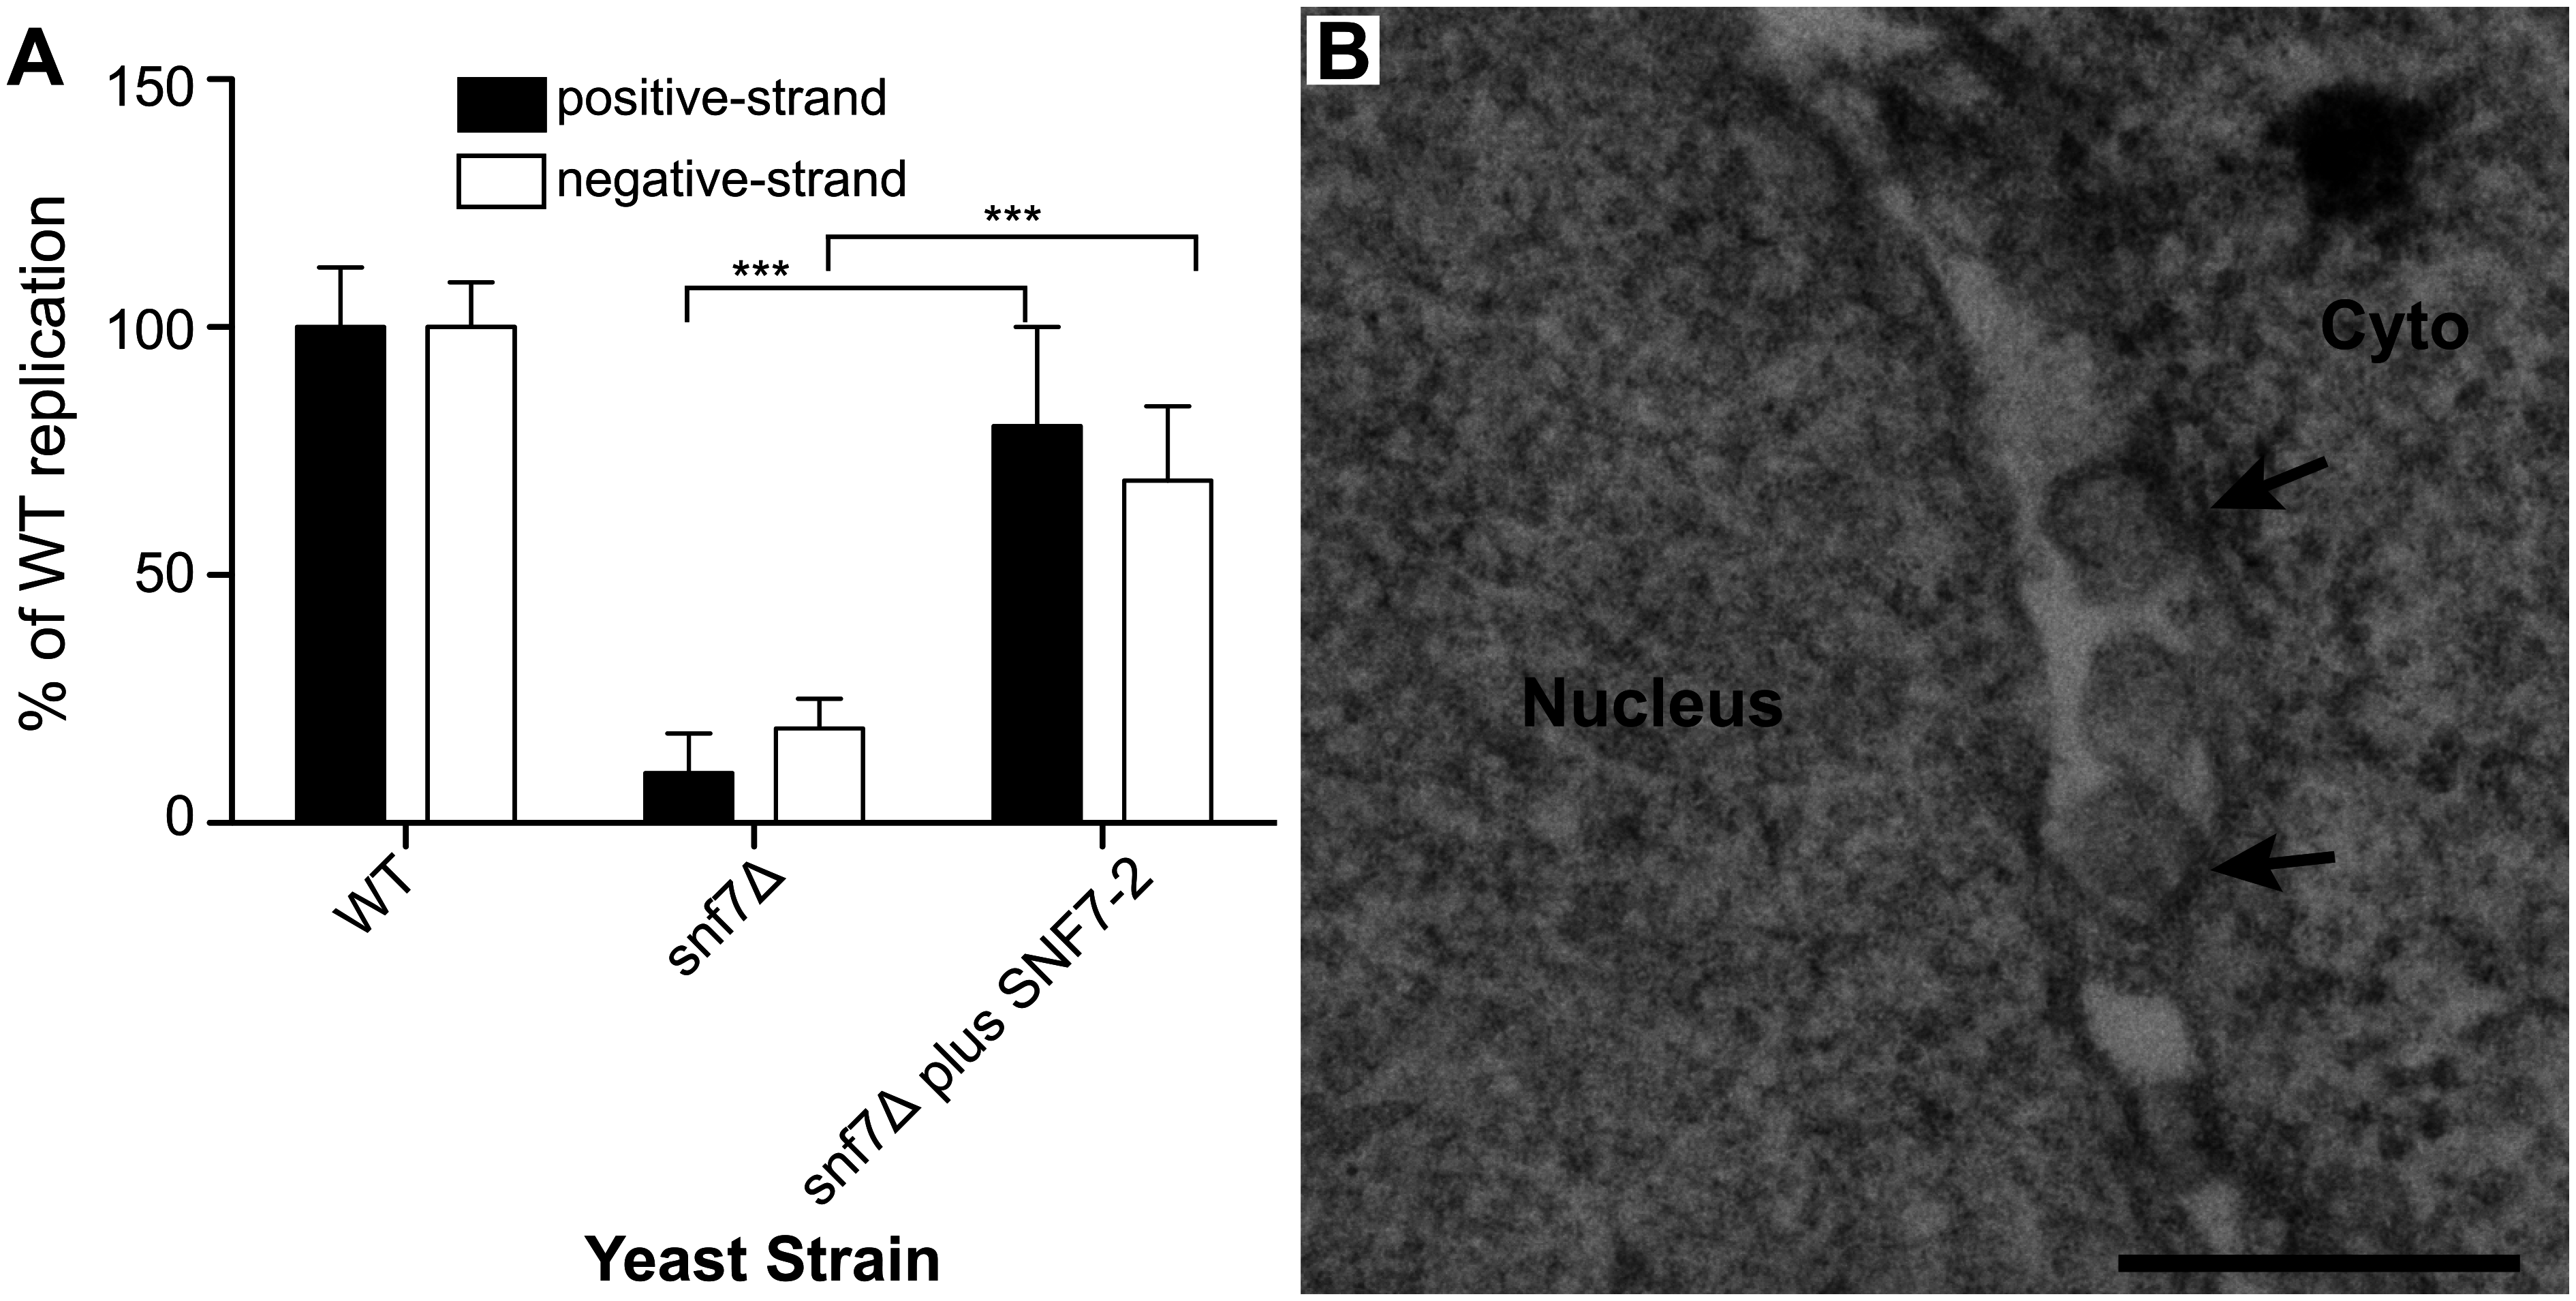 Plant homolog of Snf7p complements BMV RNA replication and spherule formation in yeast.